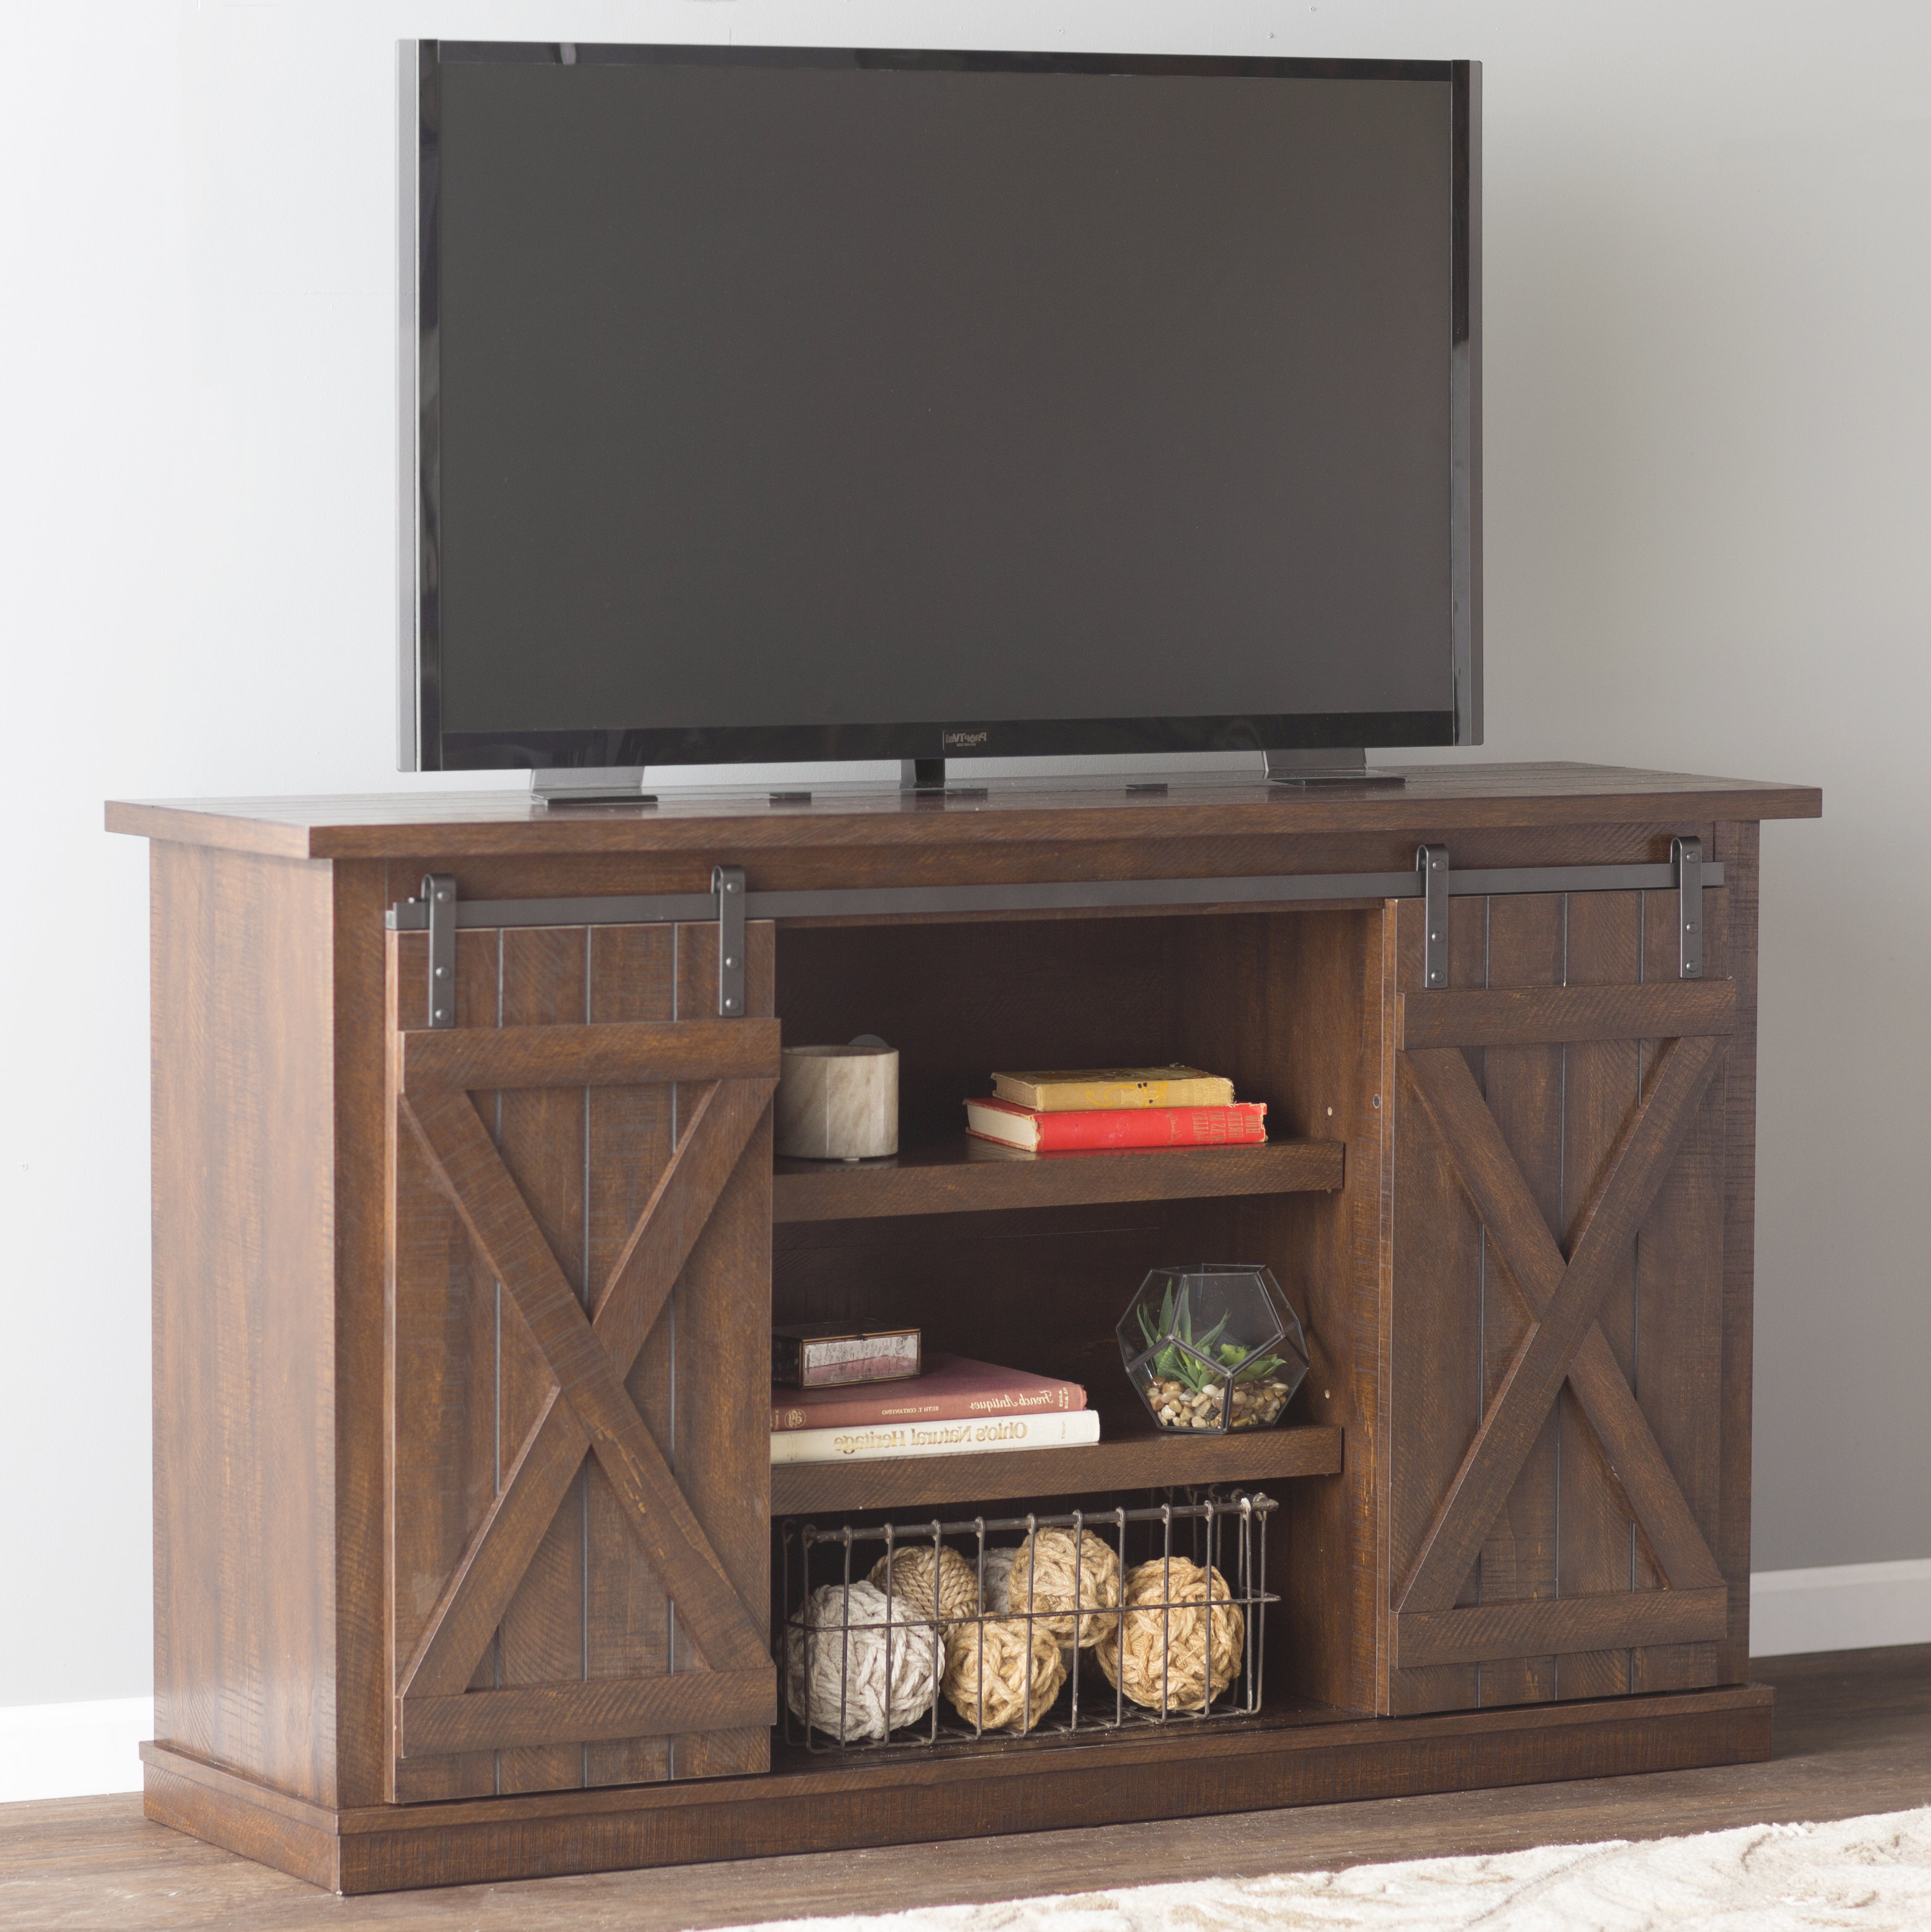 Newest Tall Narrow Tv Stands In Tall Narrow Tv Stand (Gallery 2 of 20)